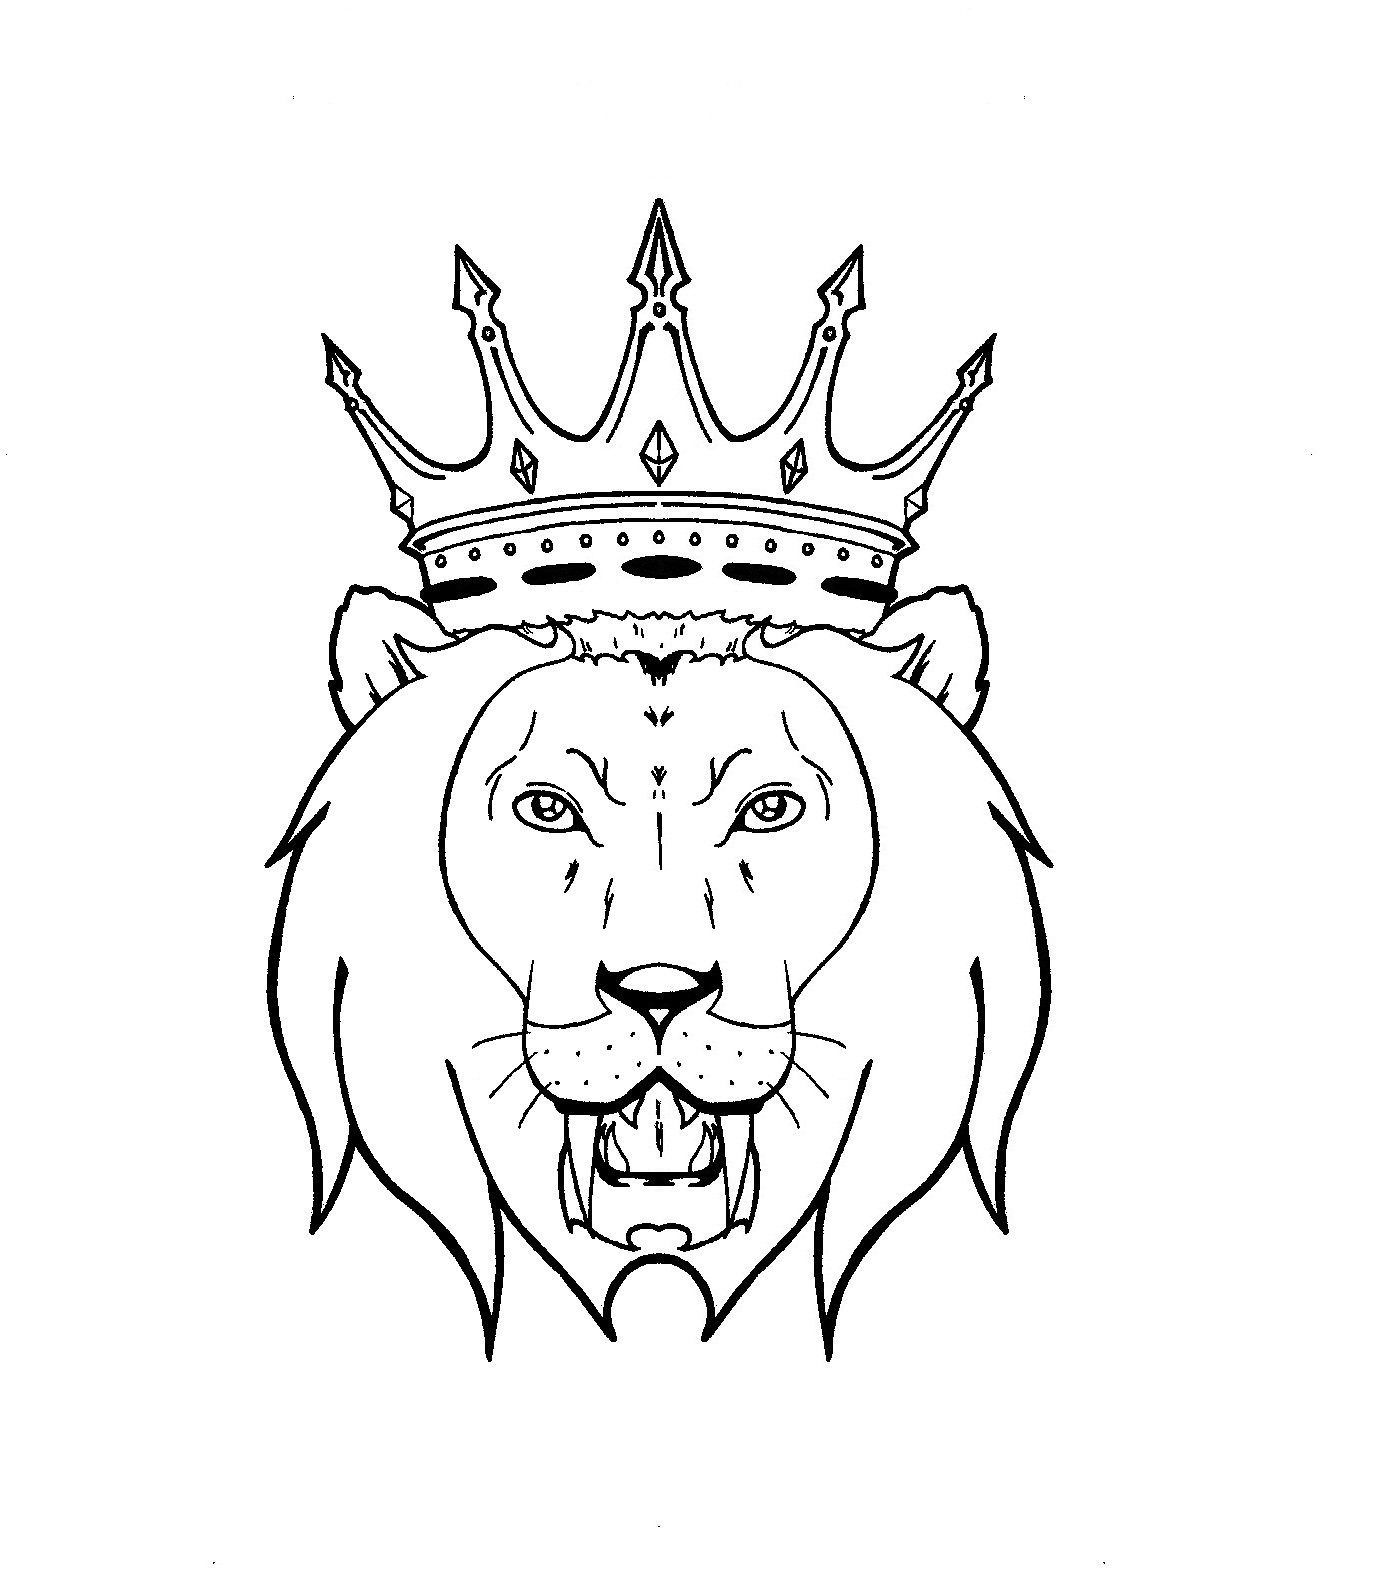 The Awesome Lion Tattoo Design Photograph